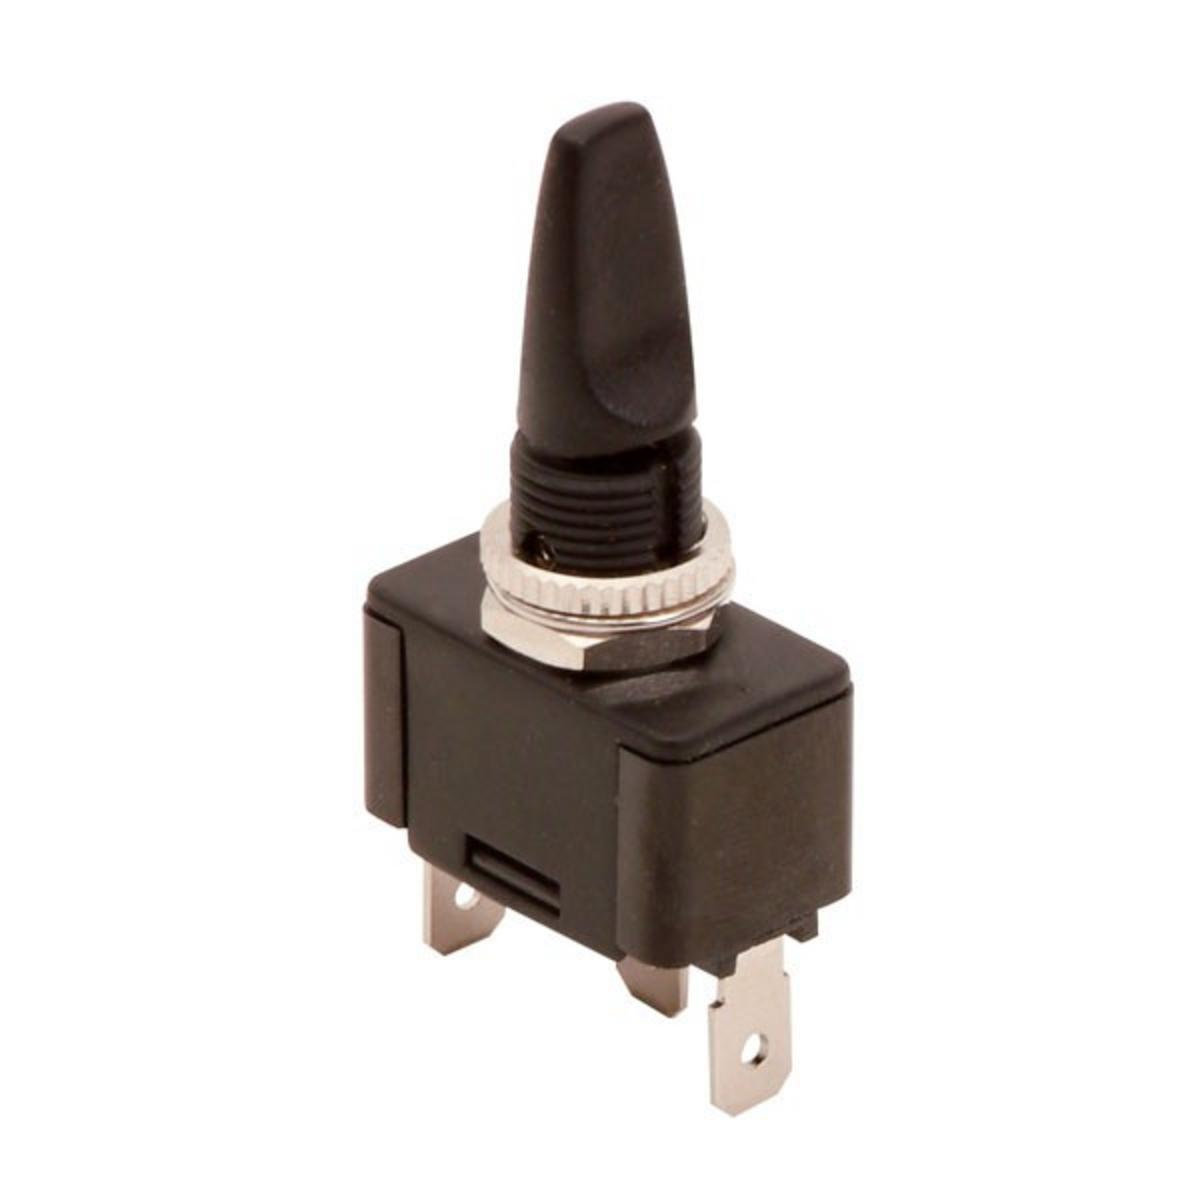 MARINE TOGGLE SWITCH 3-POS, ON-OFF-ON